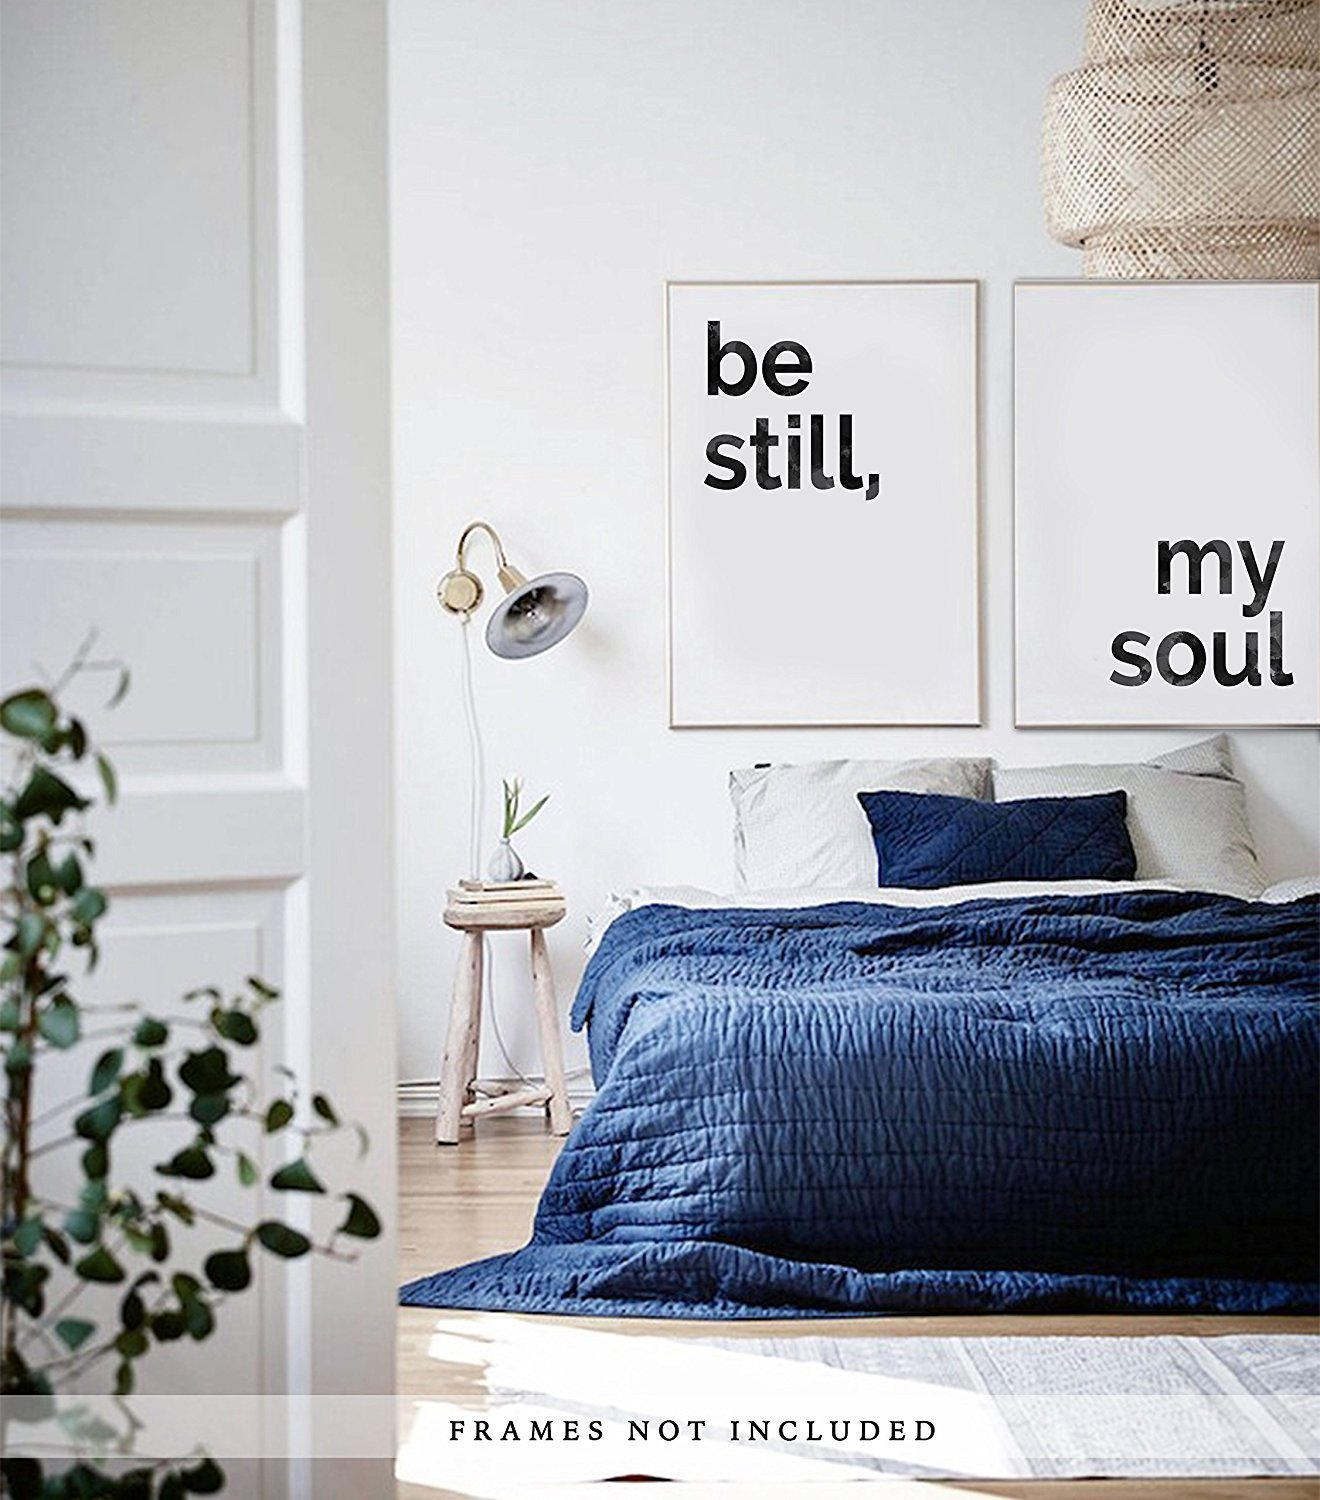 Be Still My Soul Artwork / Set of 2 Prints / Above The Bed Art / Bedroom Decor / Home Decor / Modern Trendy Artwork / Anniversary Gift / Large Artwork / Frames Not Included (24 x 30 Inches)